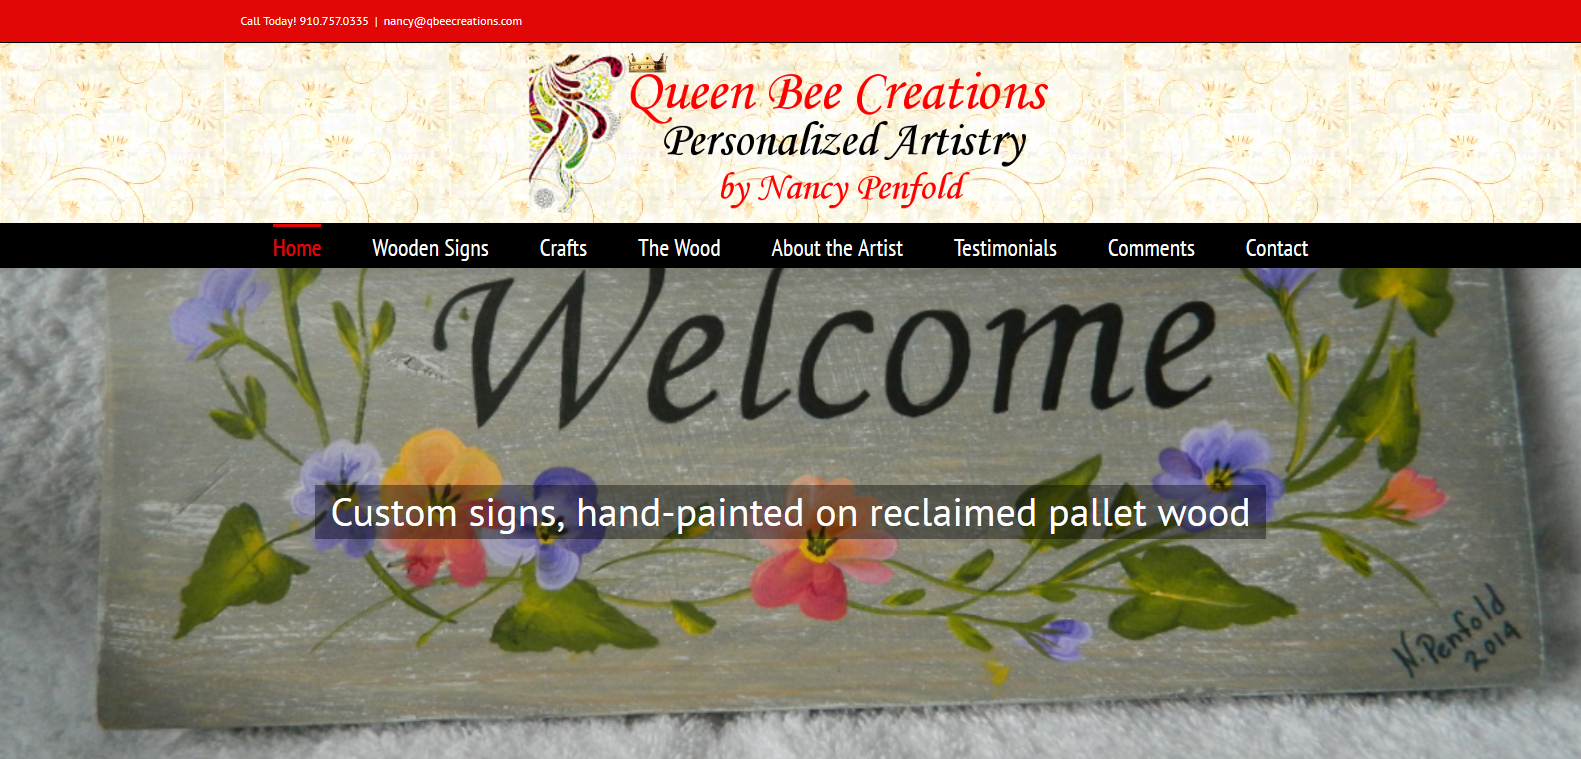 Queen Bee Creations